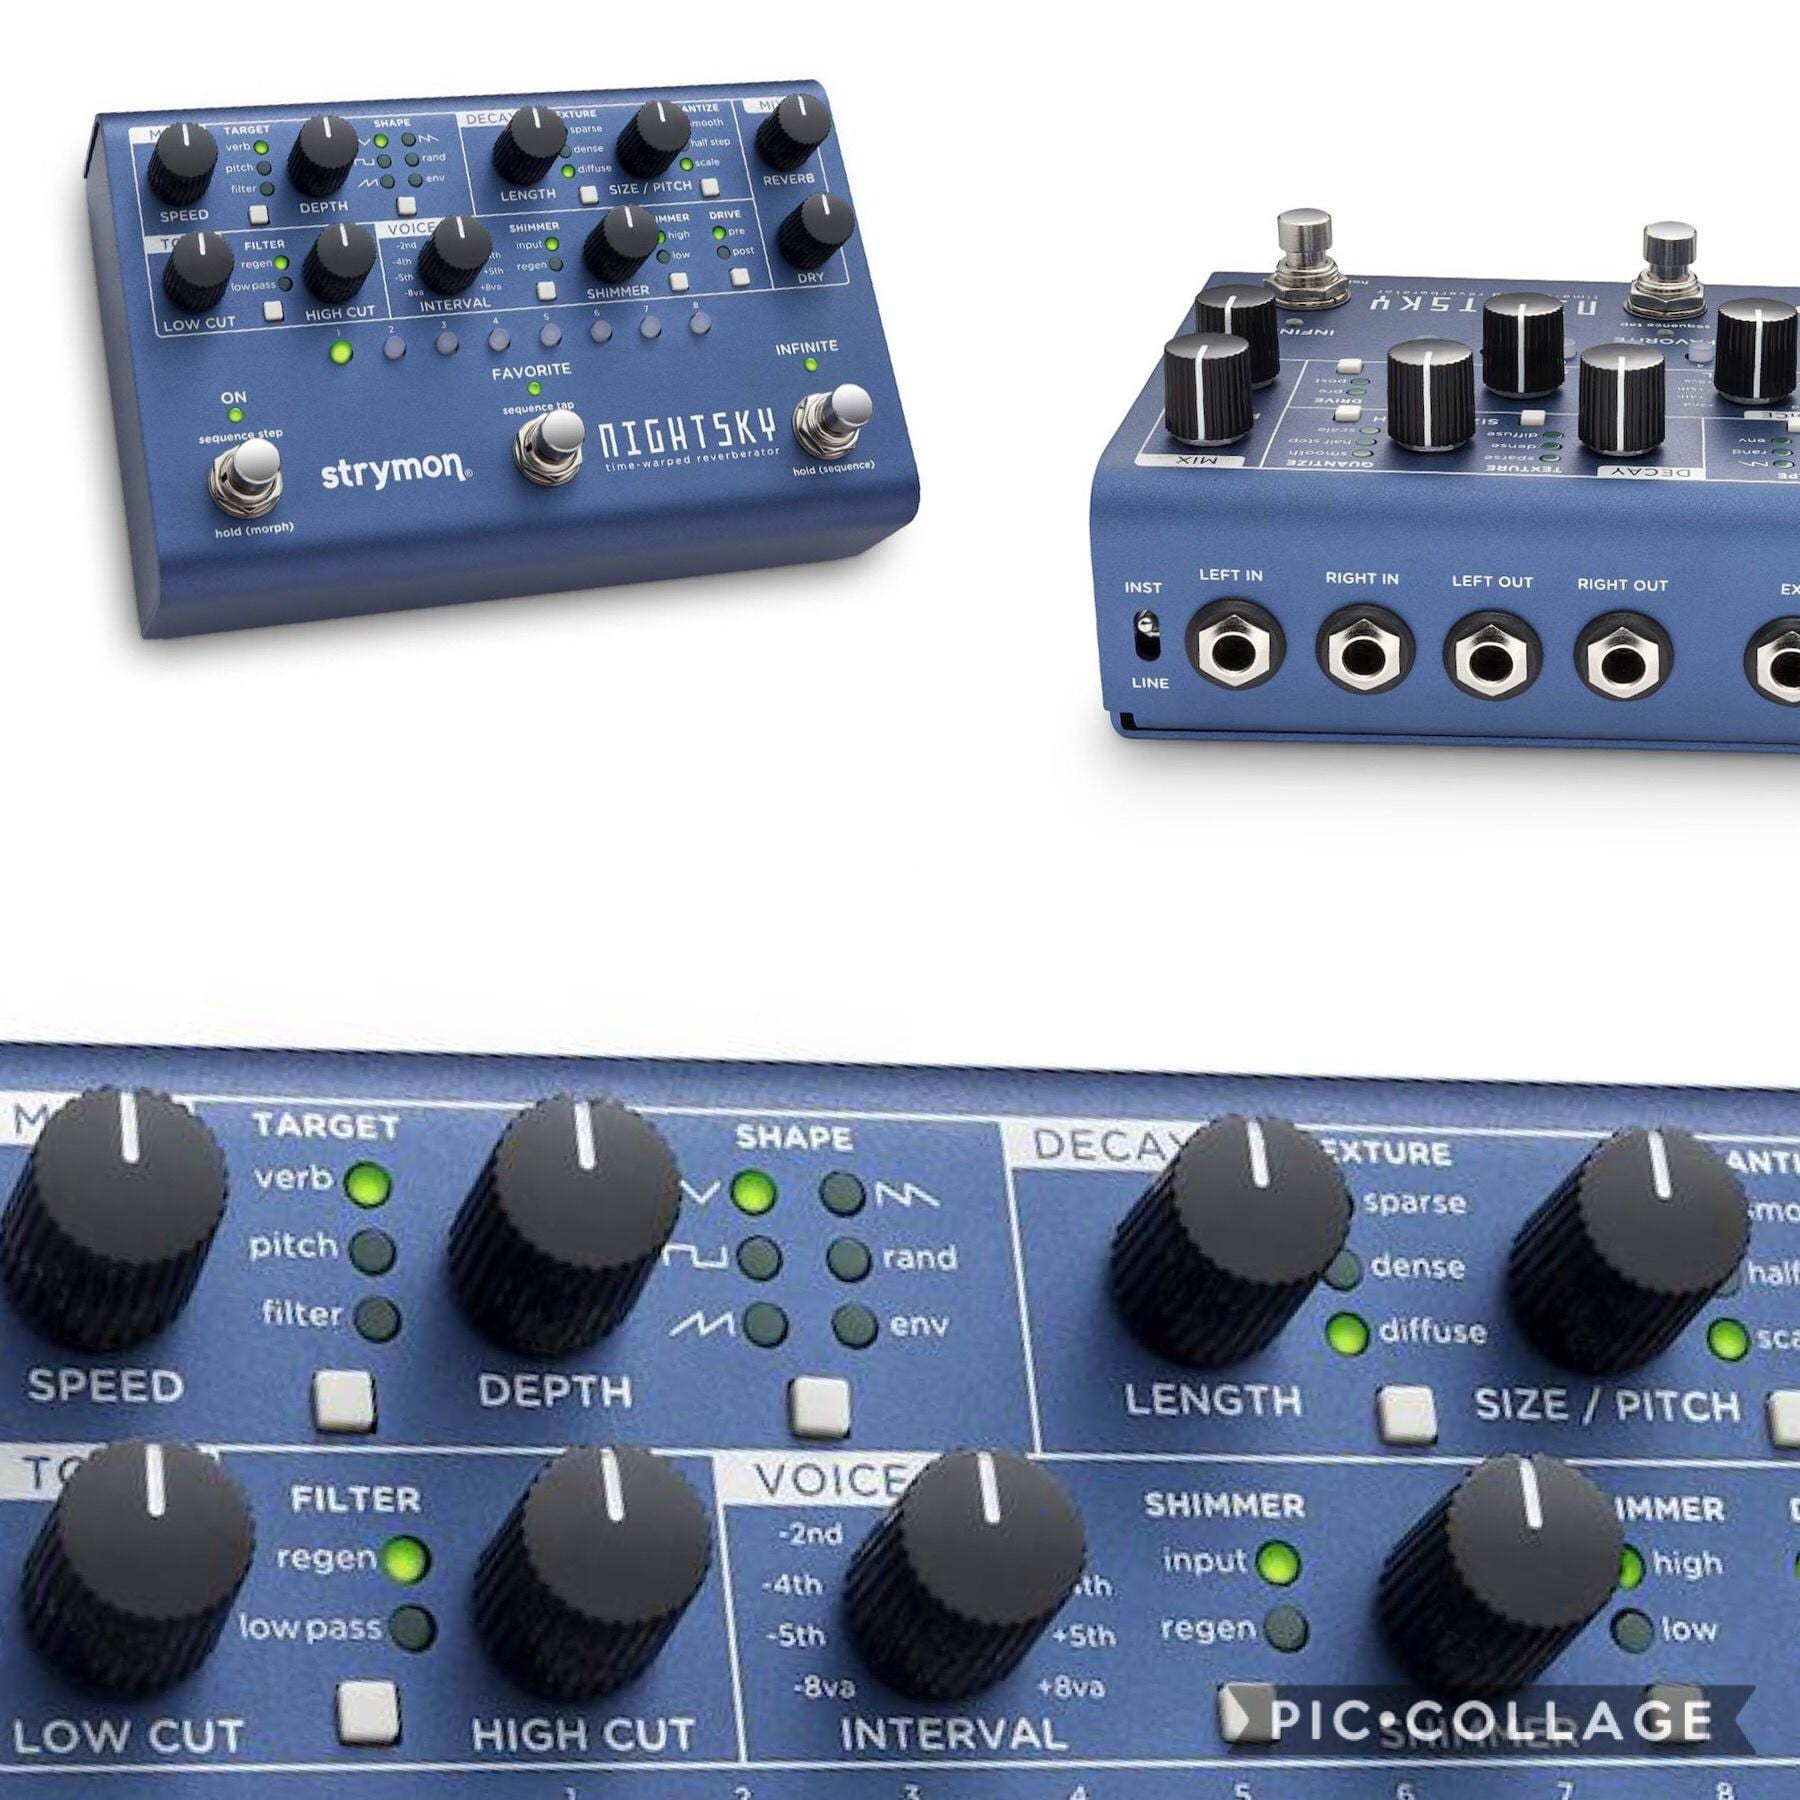 Strymon NightSky leaked online ahead of official launch